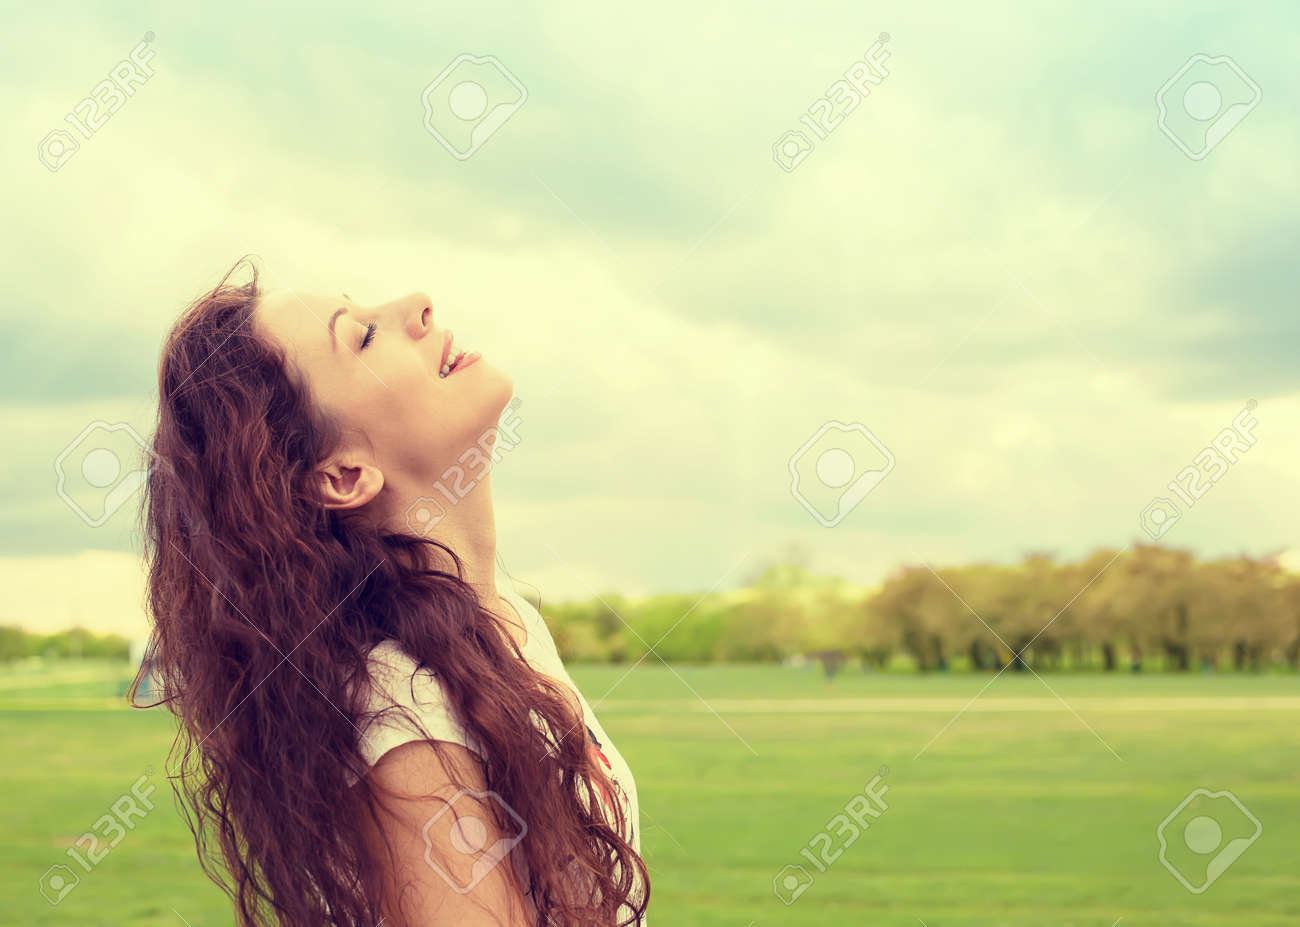 Side Profile Woman Smiling Looking Up To Blue Sky Celebrating Stock Photo Picture And Royalty Free Image Image 50100763